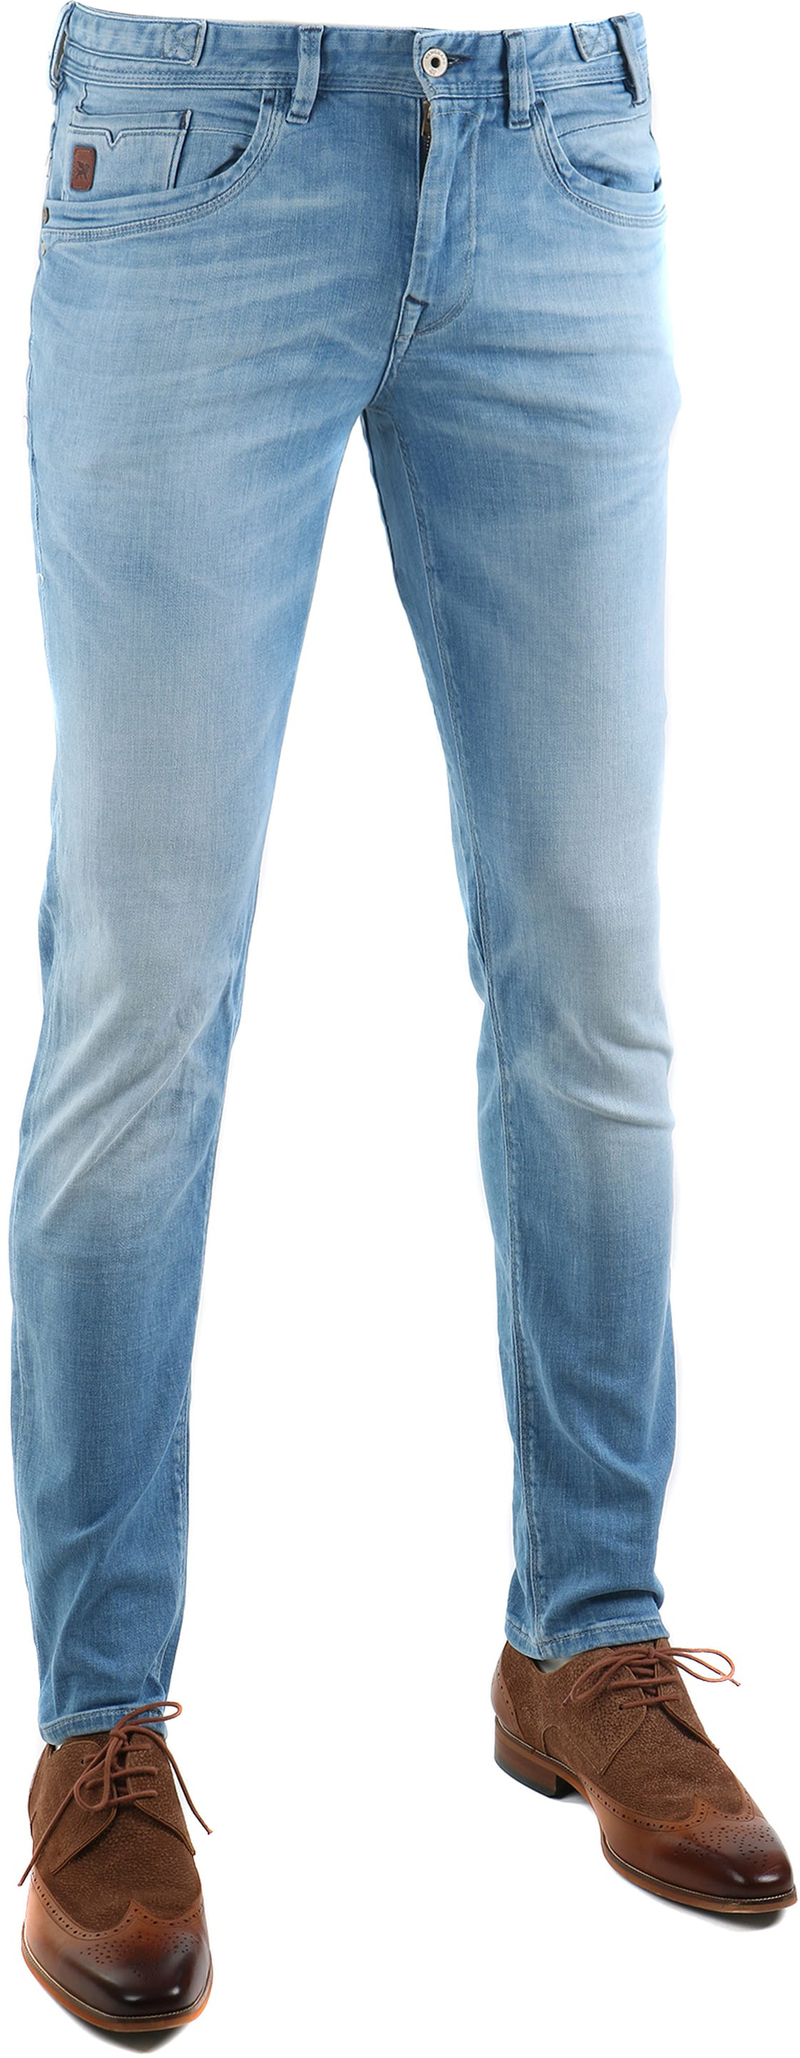 Vanguard V8 Racer Jeans Electric Blue photo 0